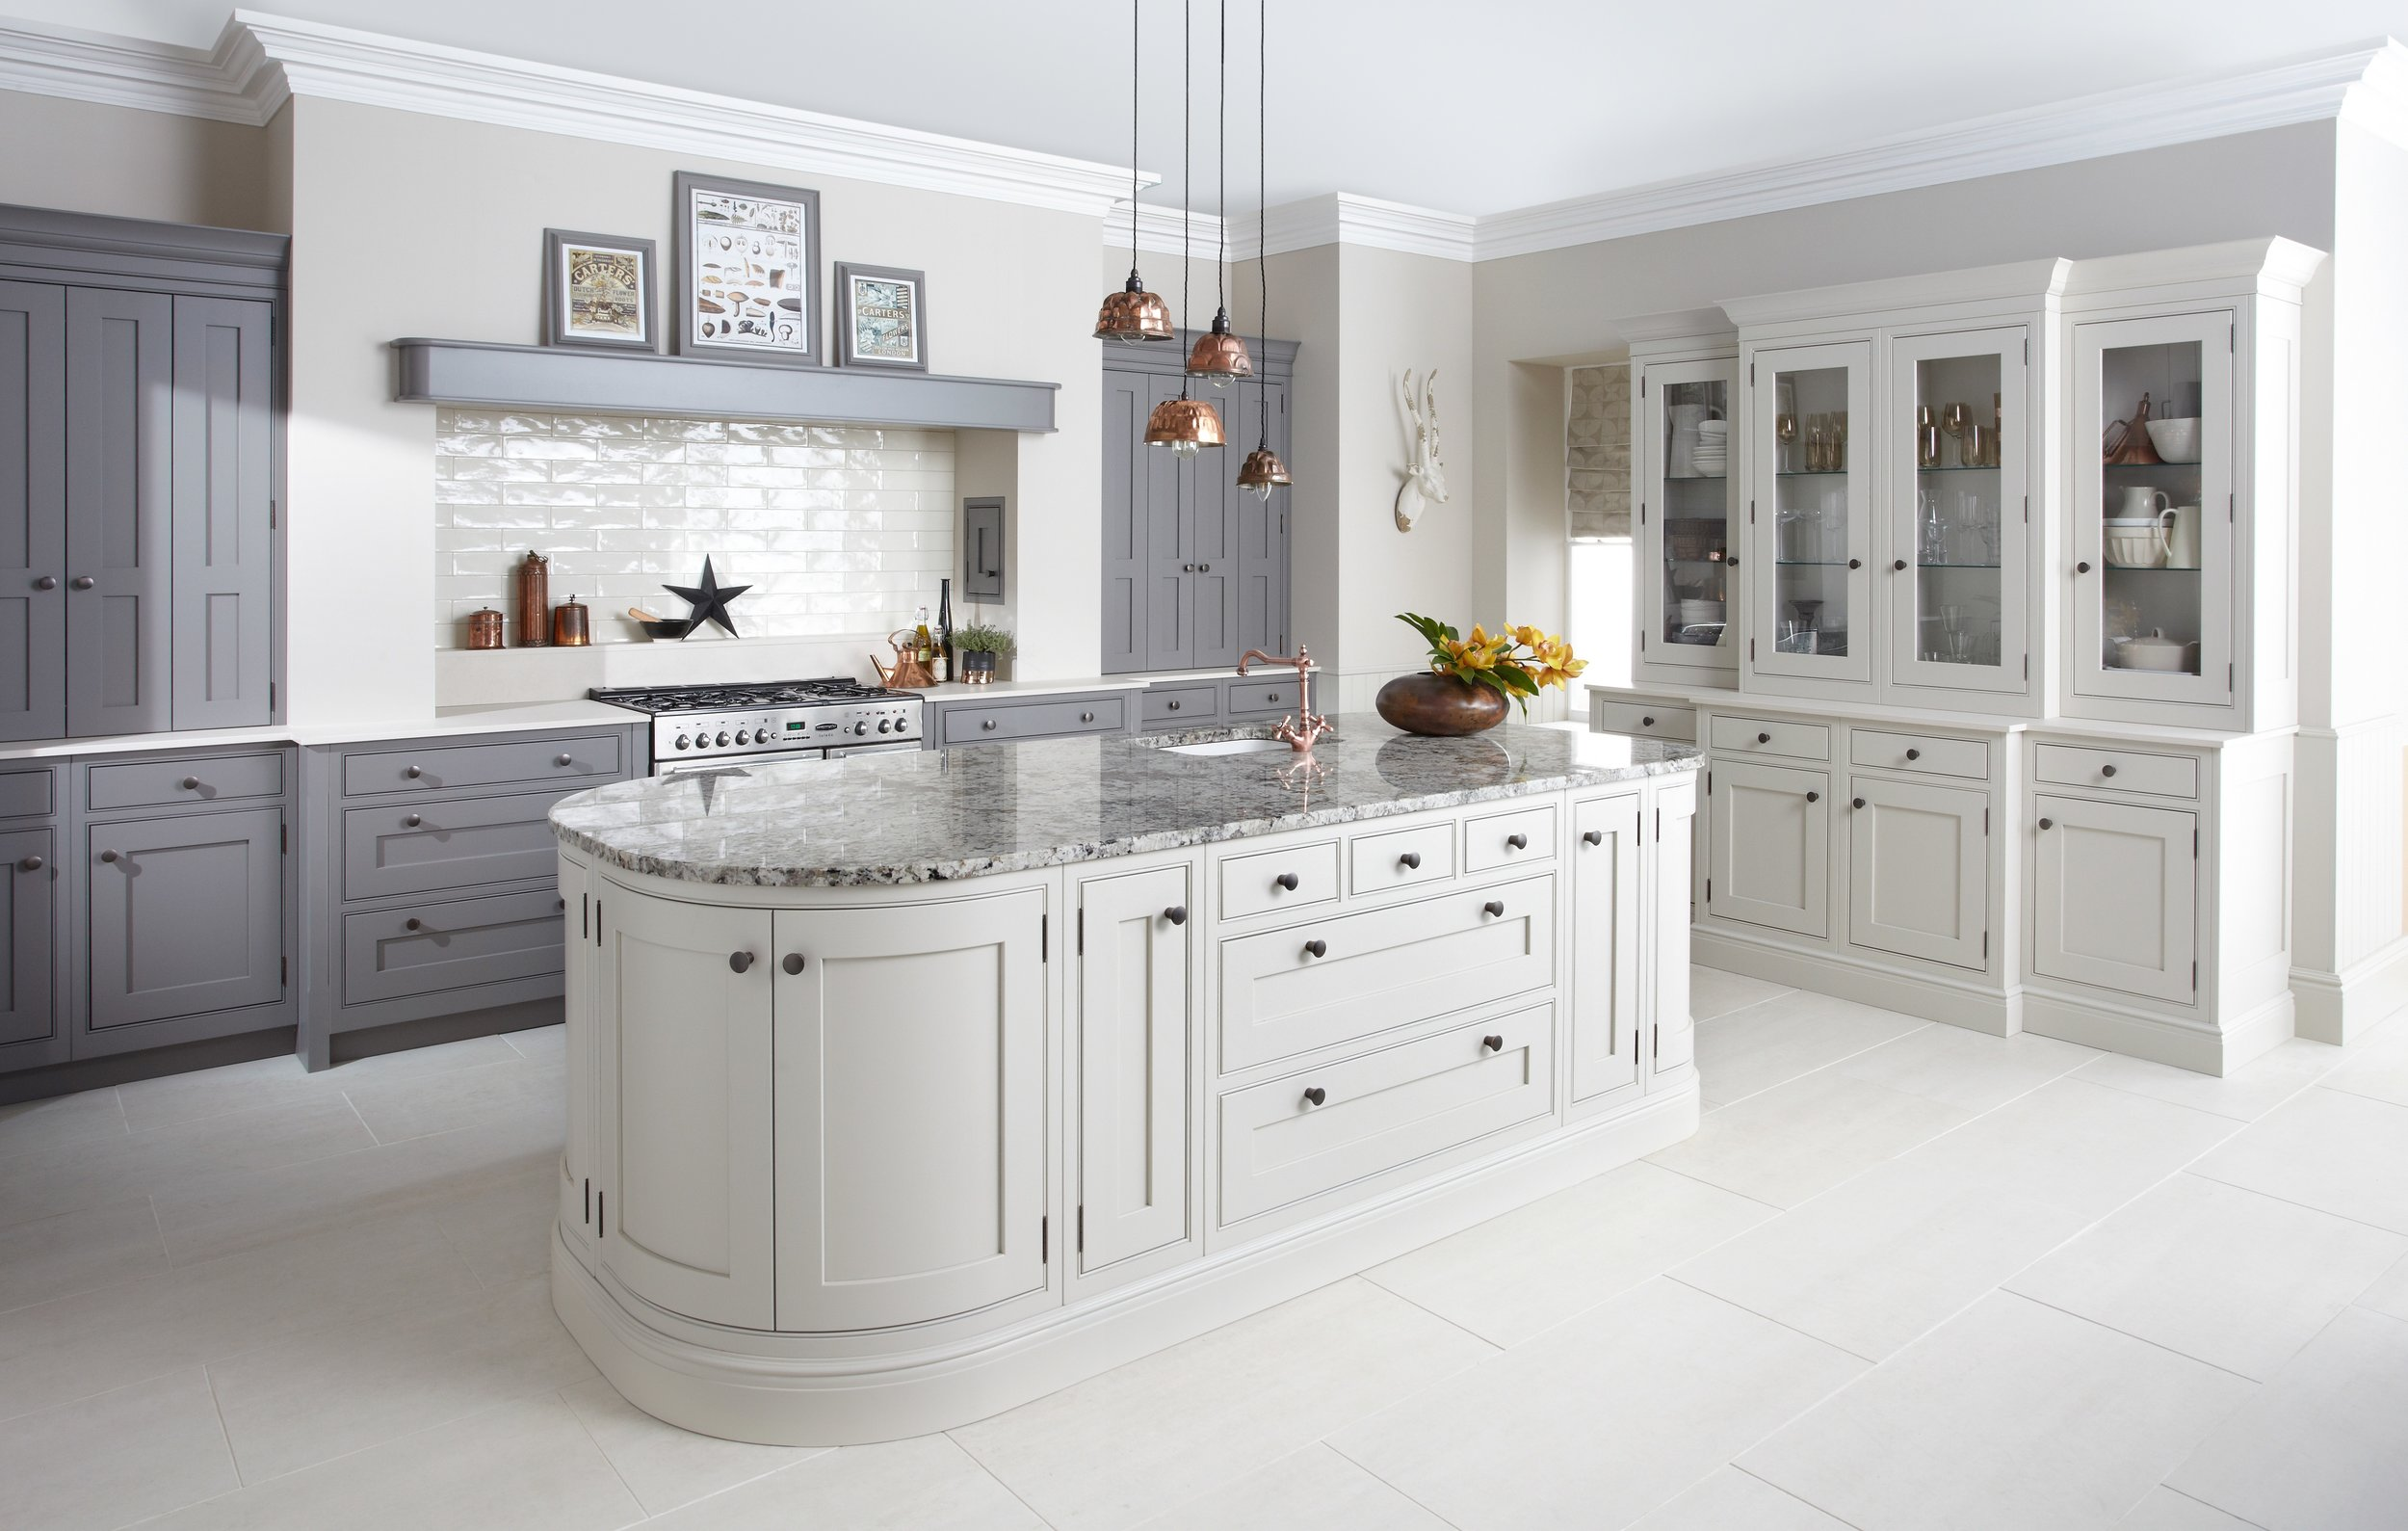 retaining its focus on the development of new and innovative products for the fitted kitchen market. A highly skilled and dedicated team have been key to the success and longevity of the business throughout its 150 years. We look forward to producing innovative kitchen designs for our customers for many years to come.